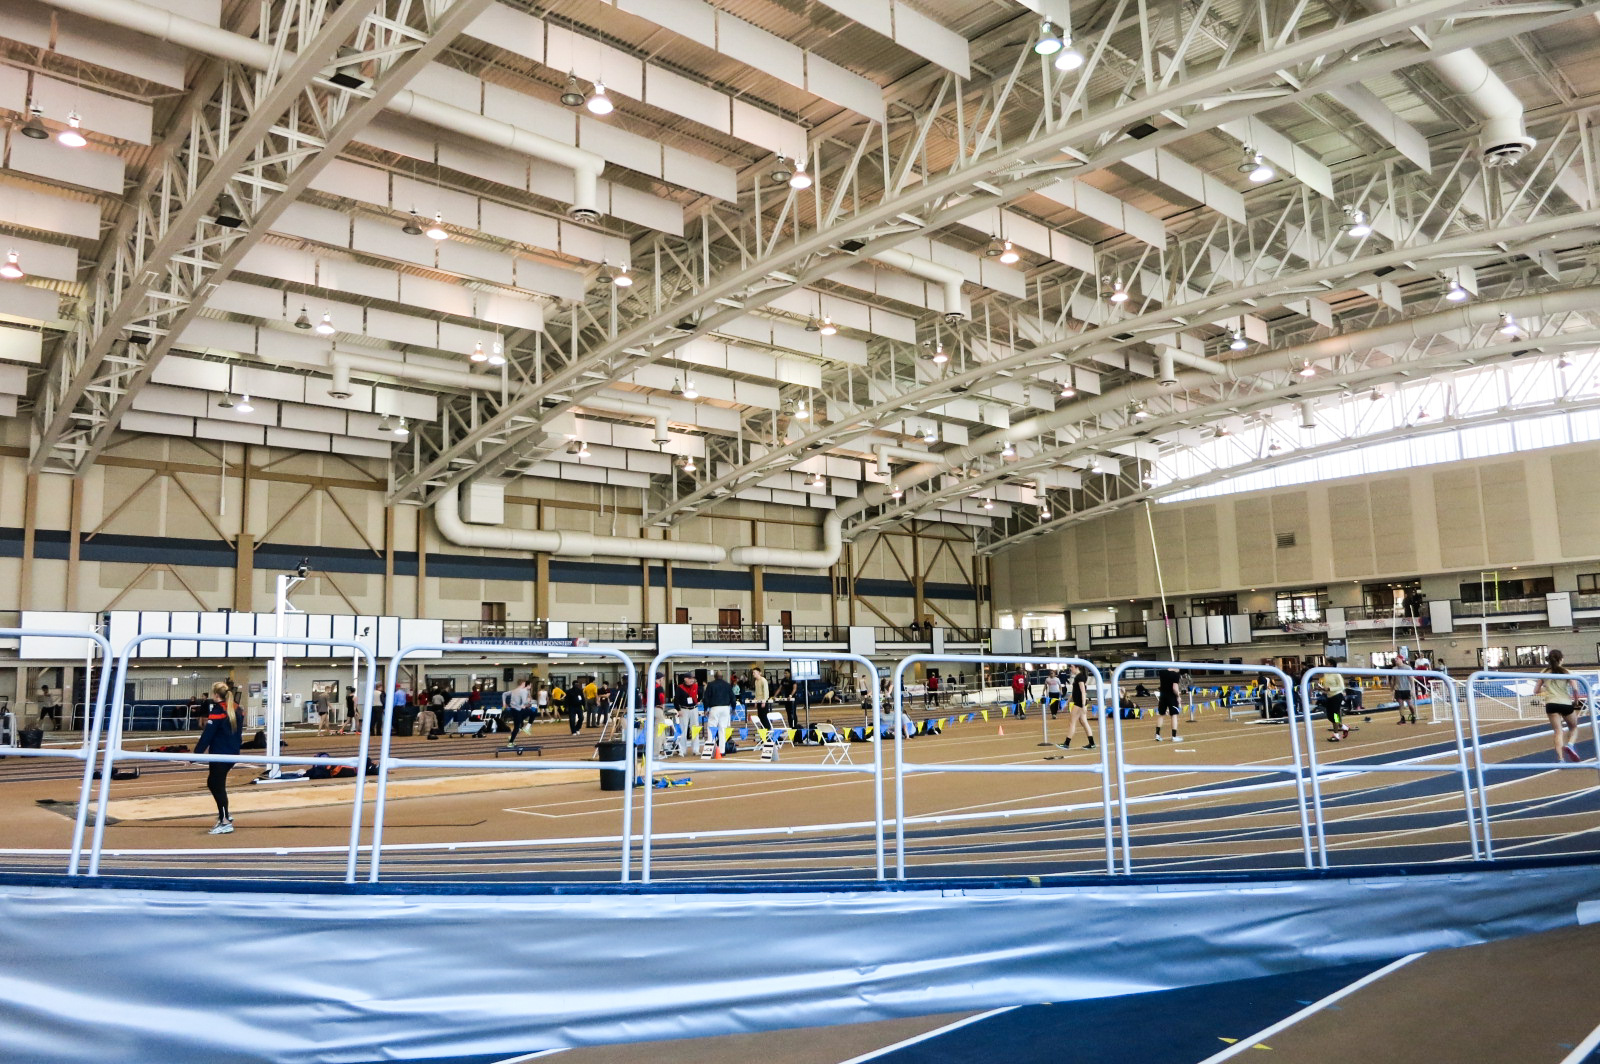 Look how much space it takes up!  I swear it looks bigger than the Boston U. track